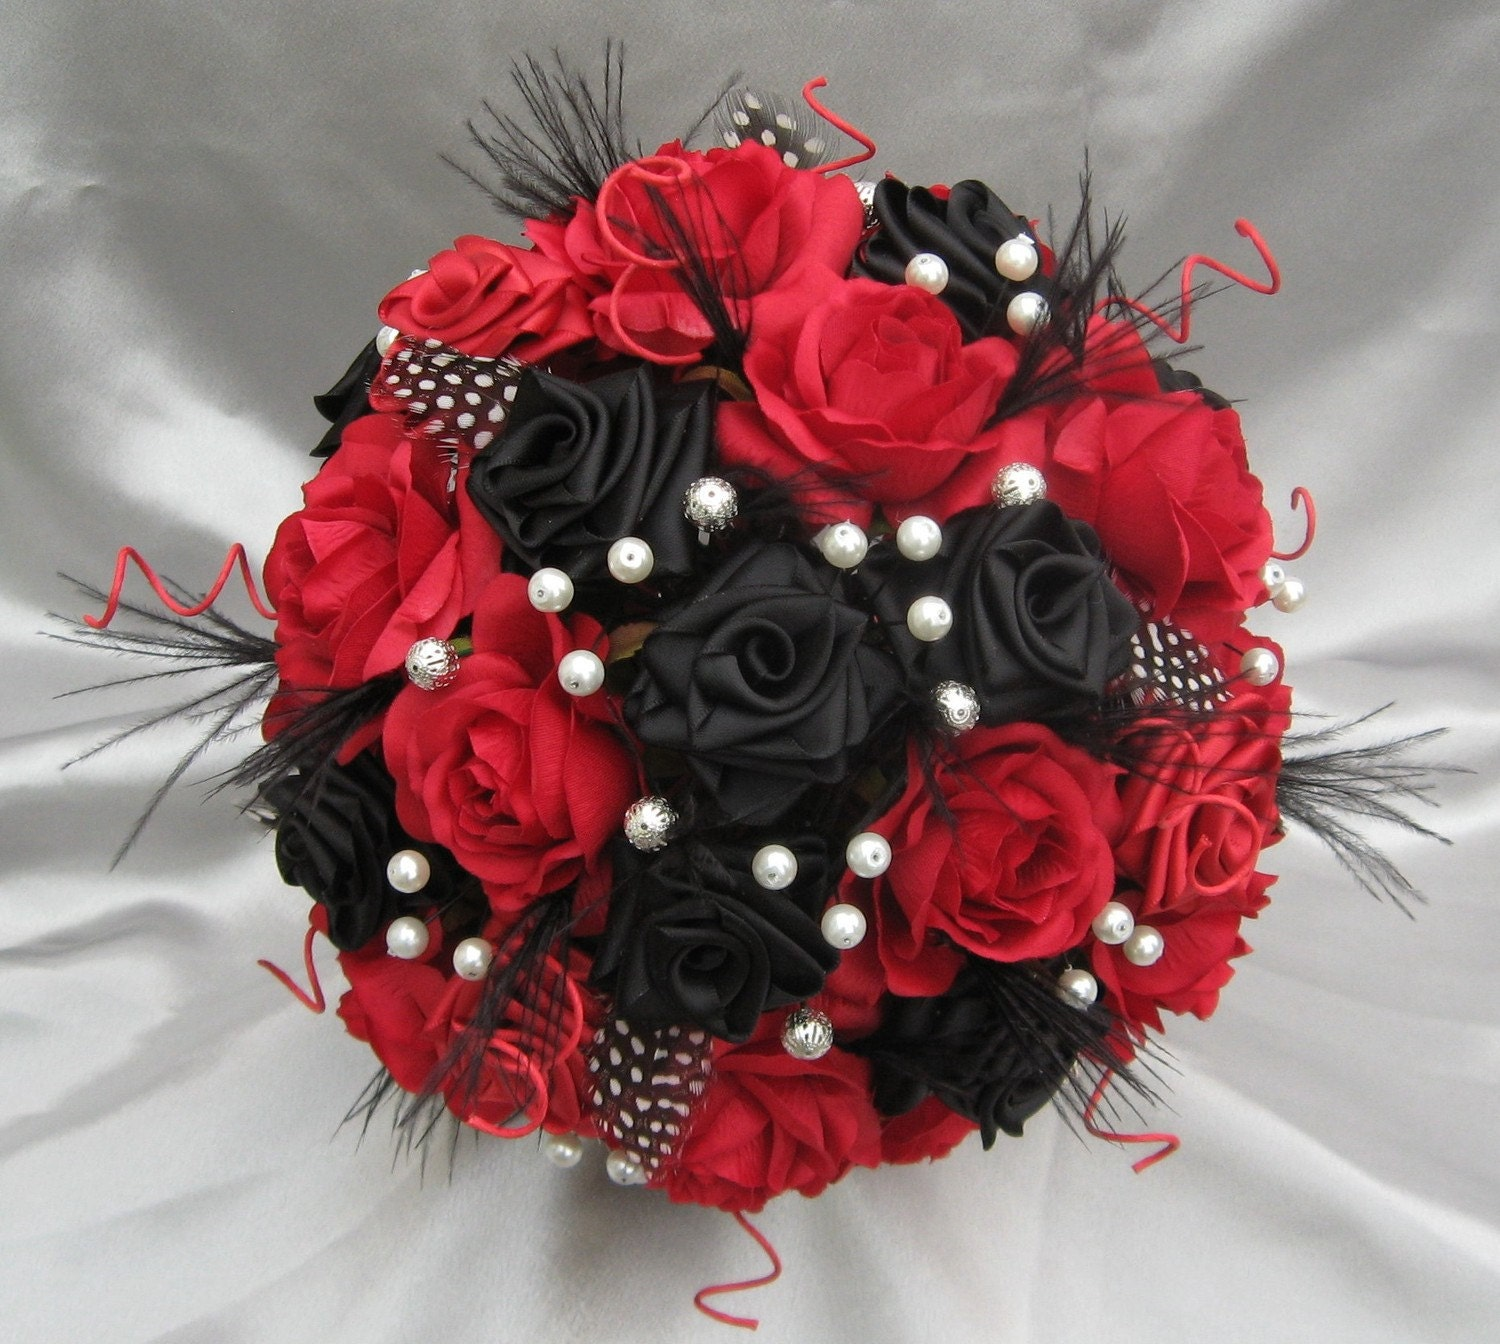 harlequin black red and white luxury bridal bouquet. Black Bedroom Furniture Sets. Home Design Ideas